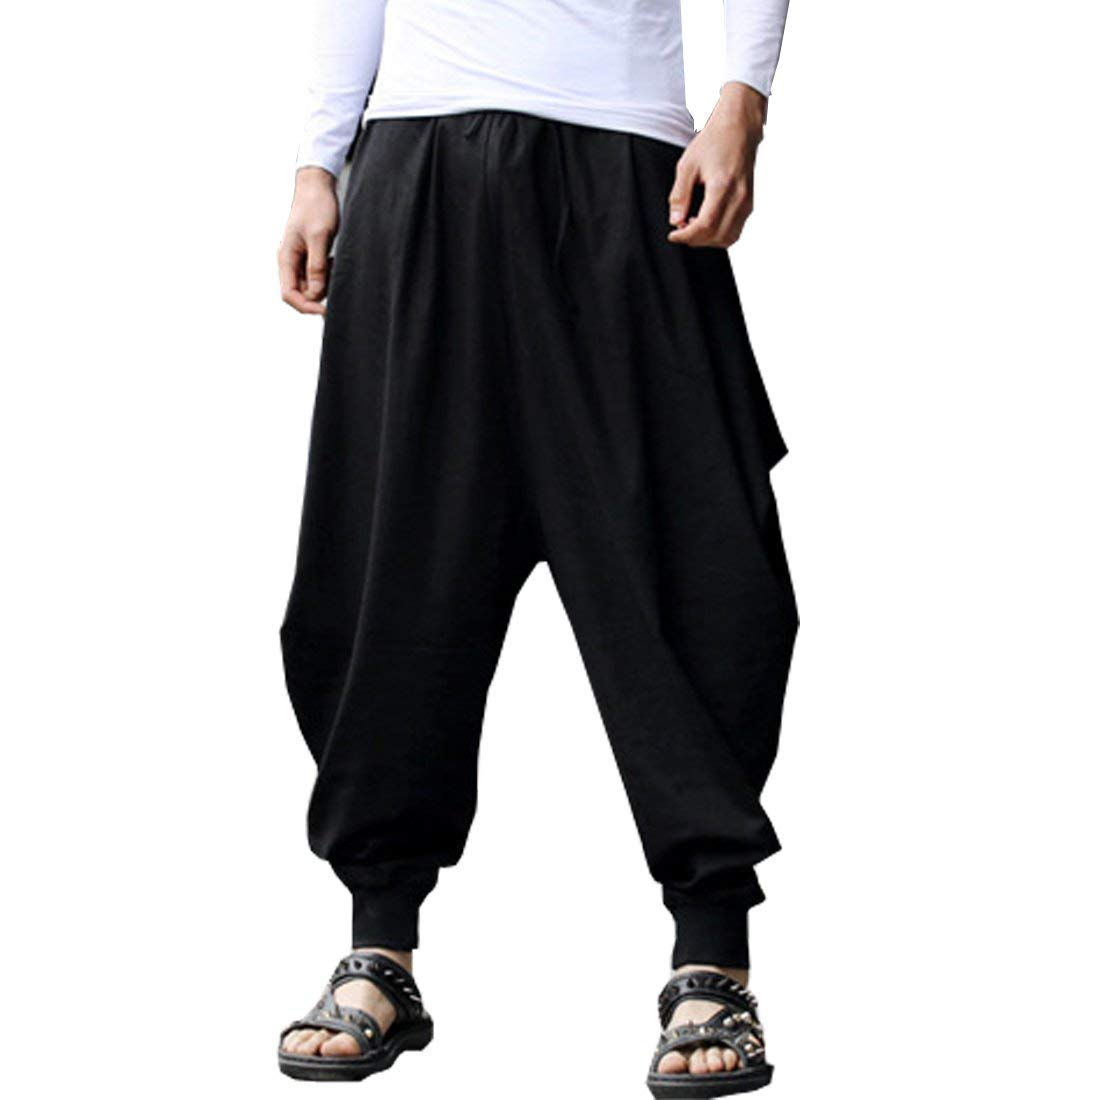 BITLIVE Men's Cotton Linen Plus Size Stretchy Waist Casual Ankle Length Pants